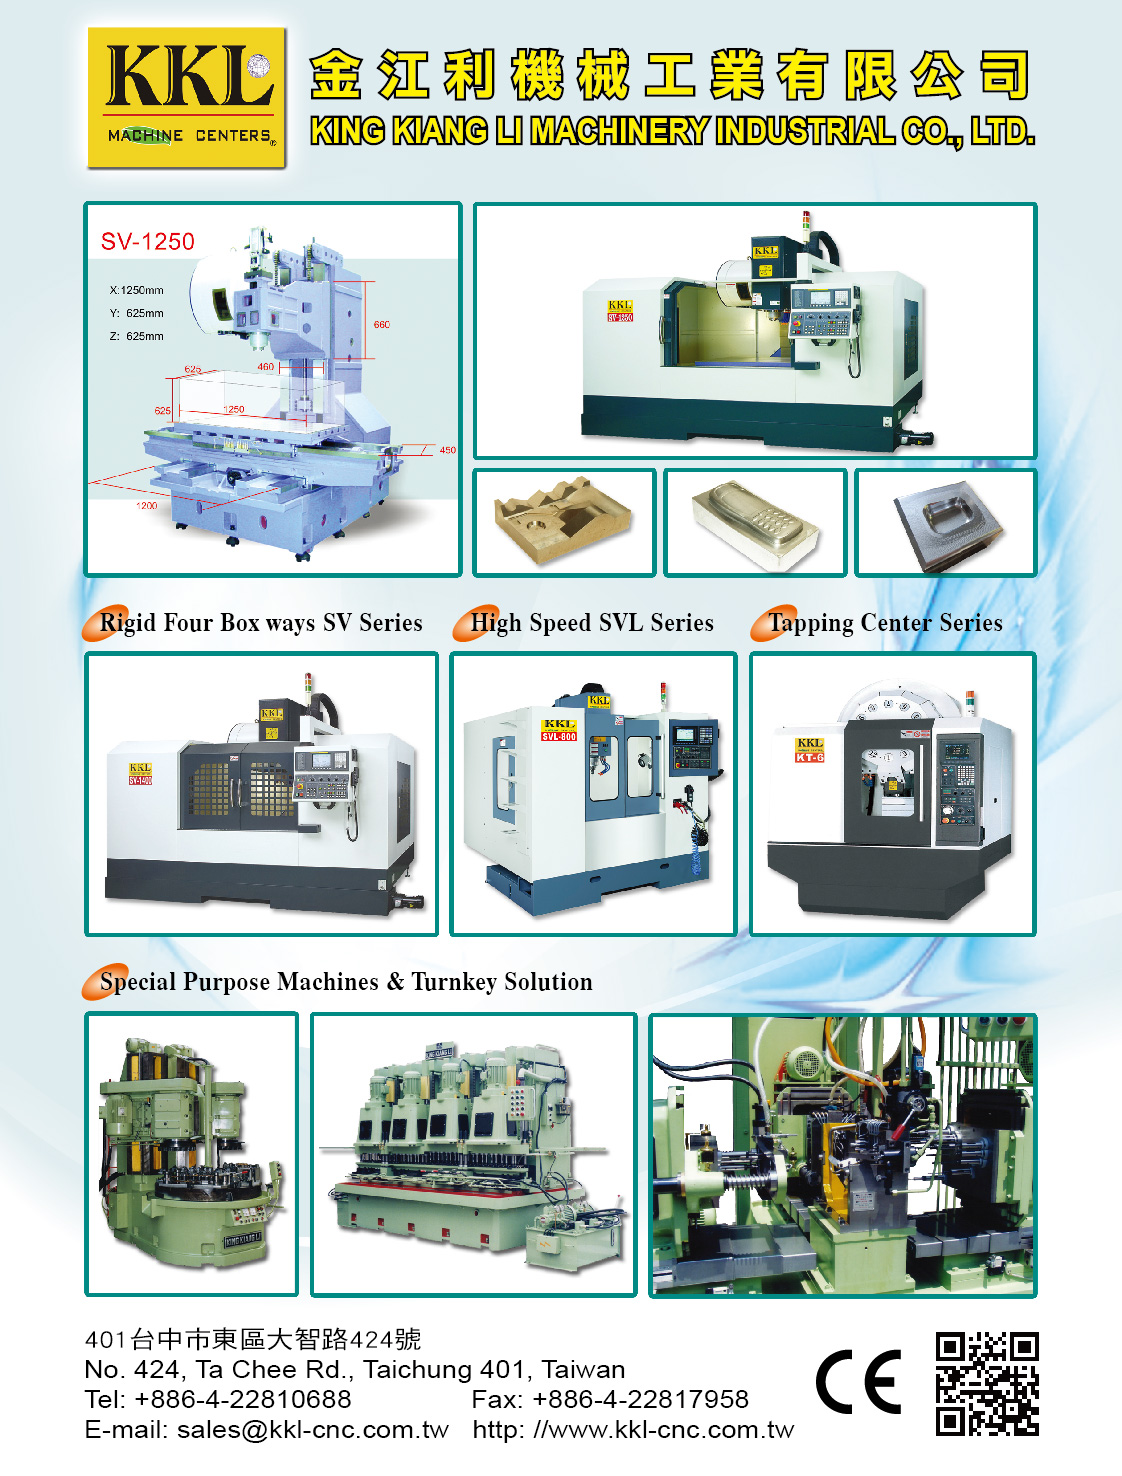 KING KIANG LI MACHINERY INDUSTRY CO., LTD.